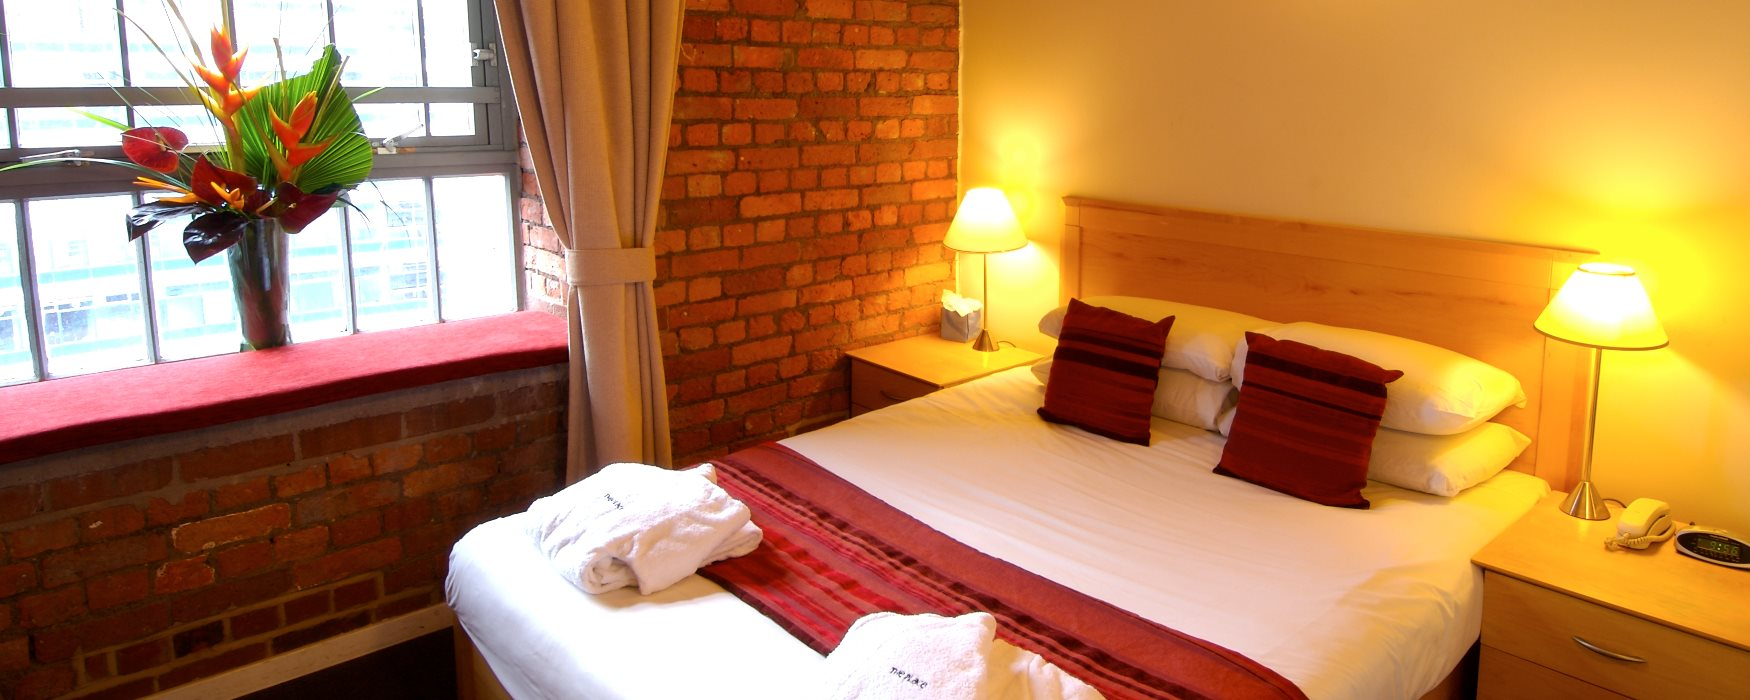 Serviced Apartments In Manchester Visit Manchester